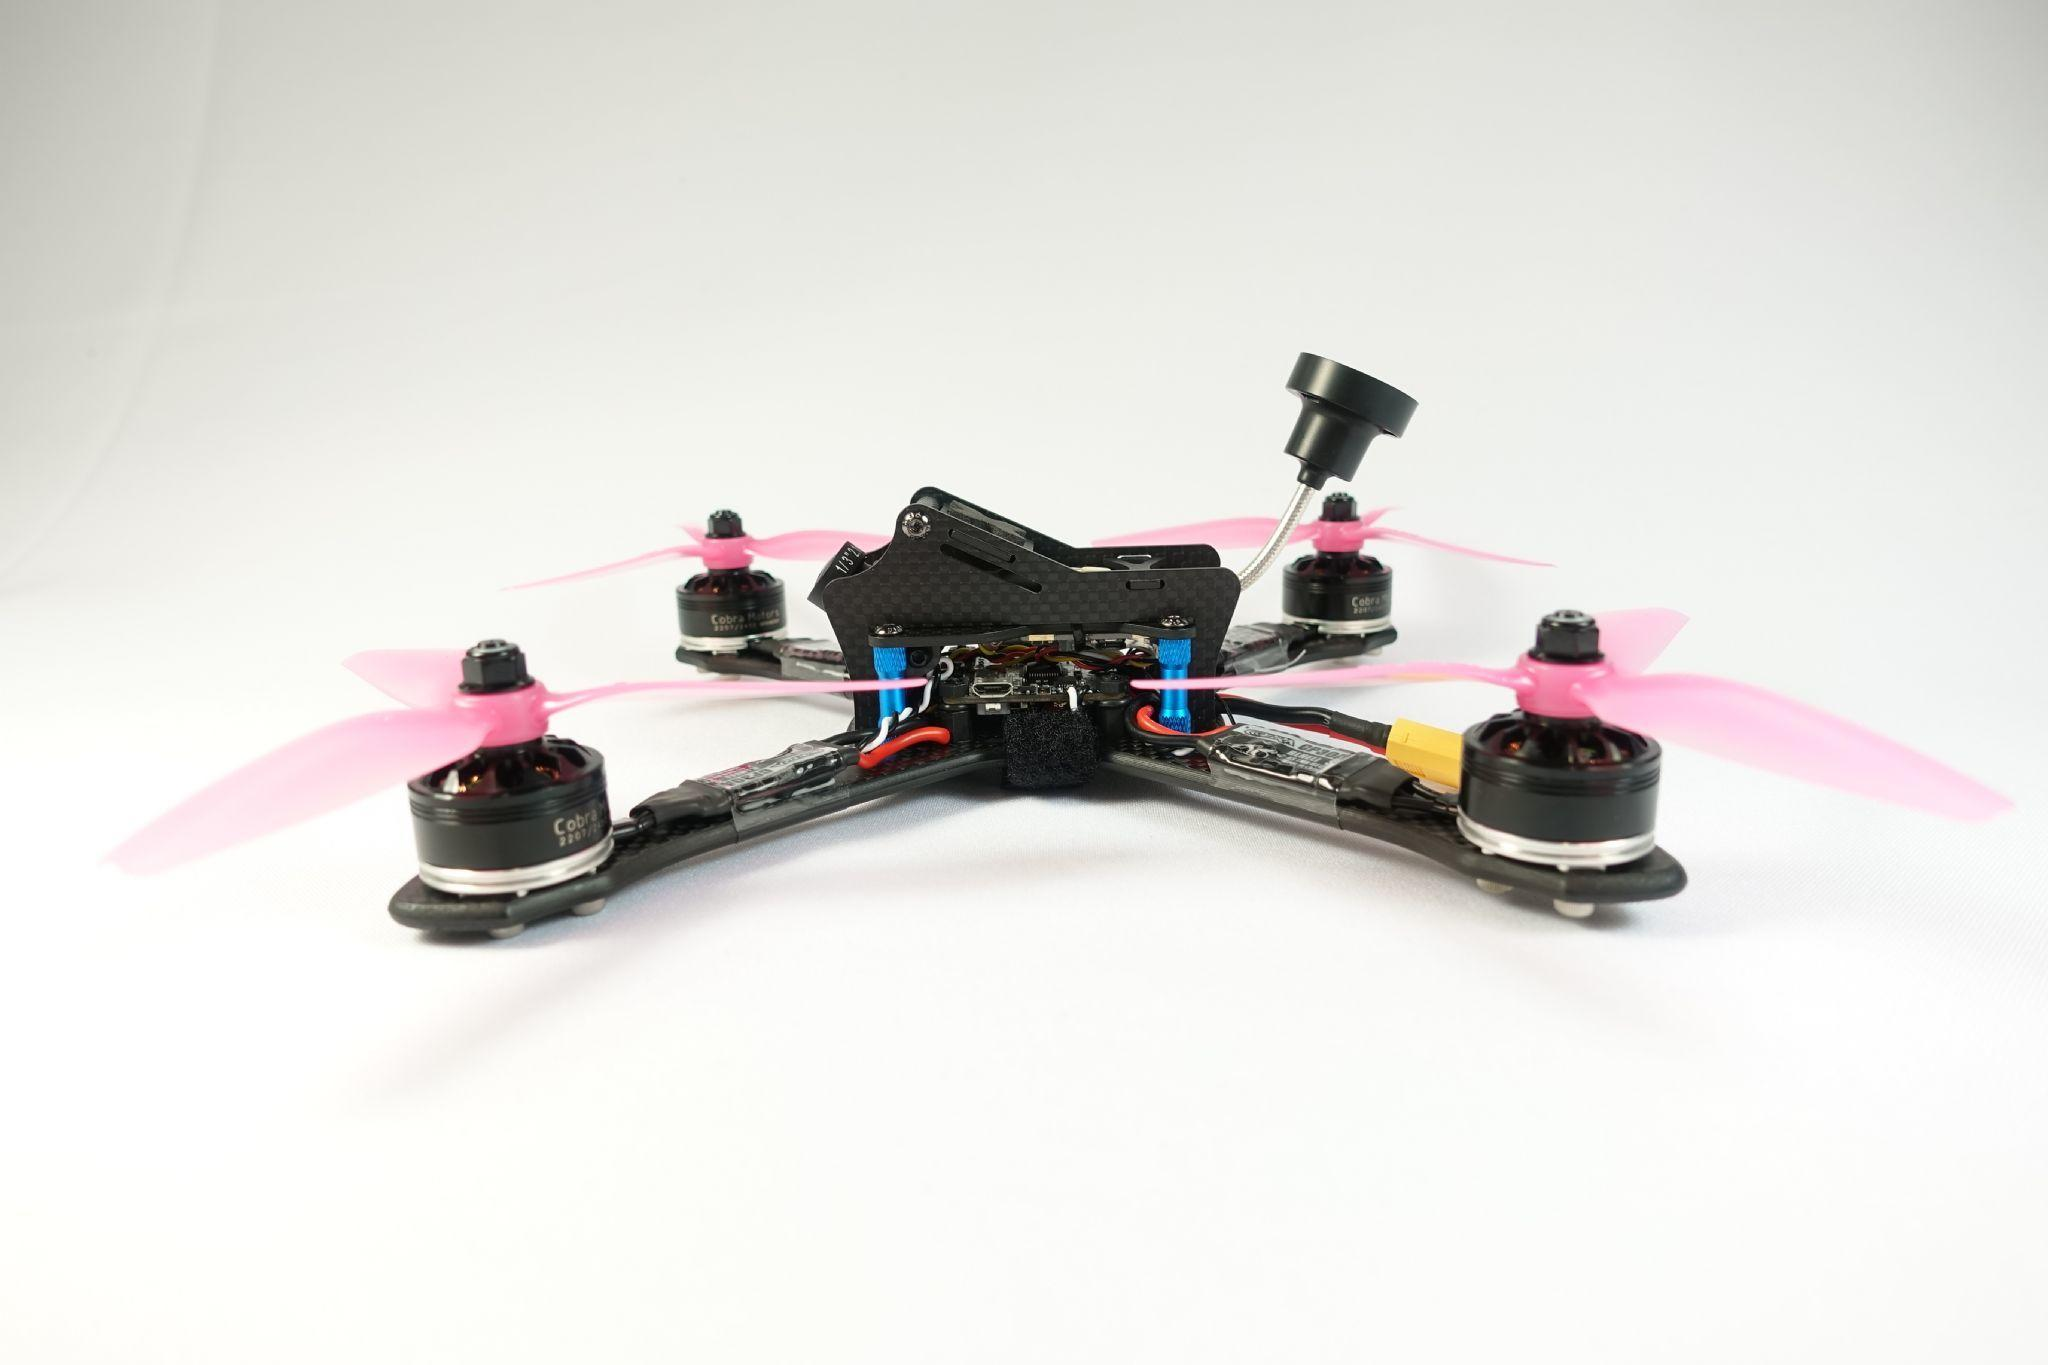 Astro X True X a very popular Racing Drone - Quadcopters.co.uk